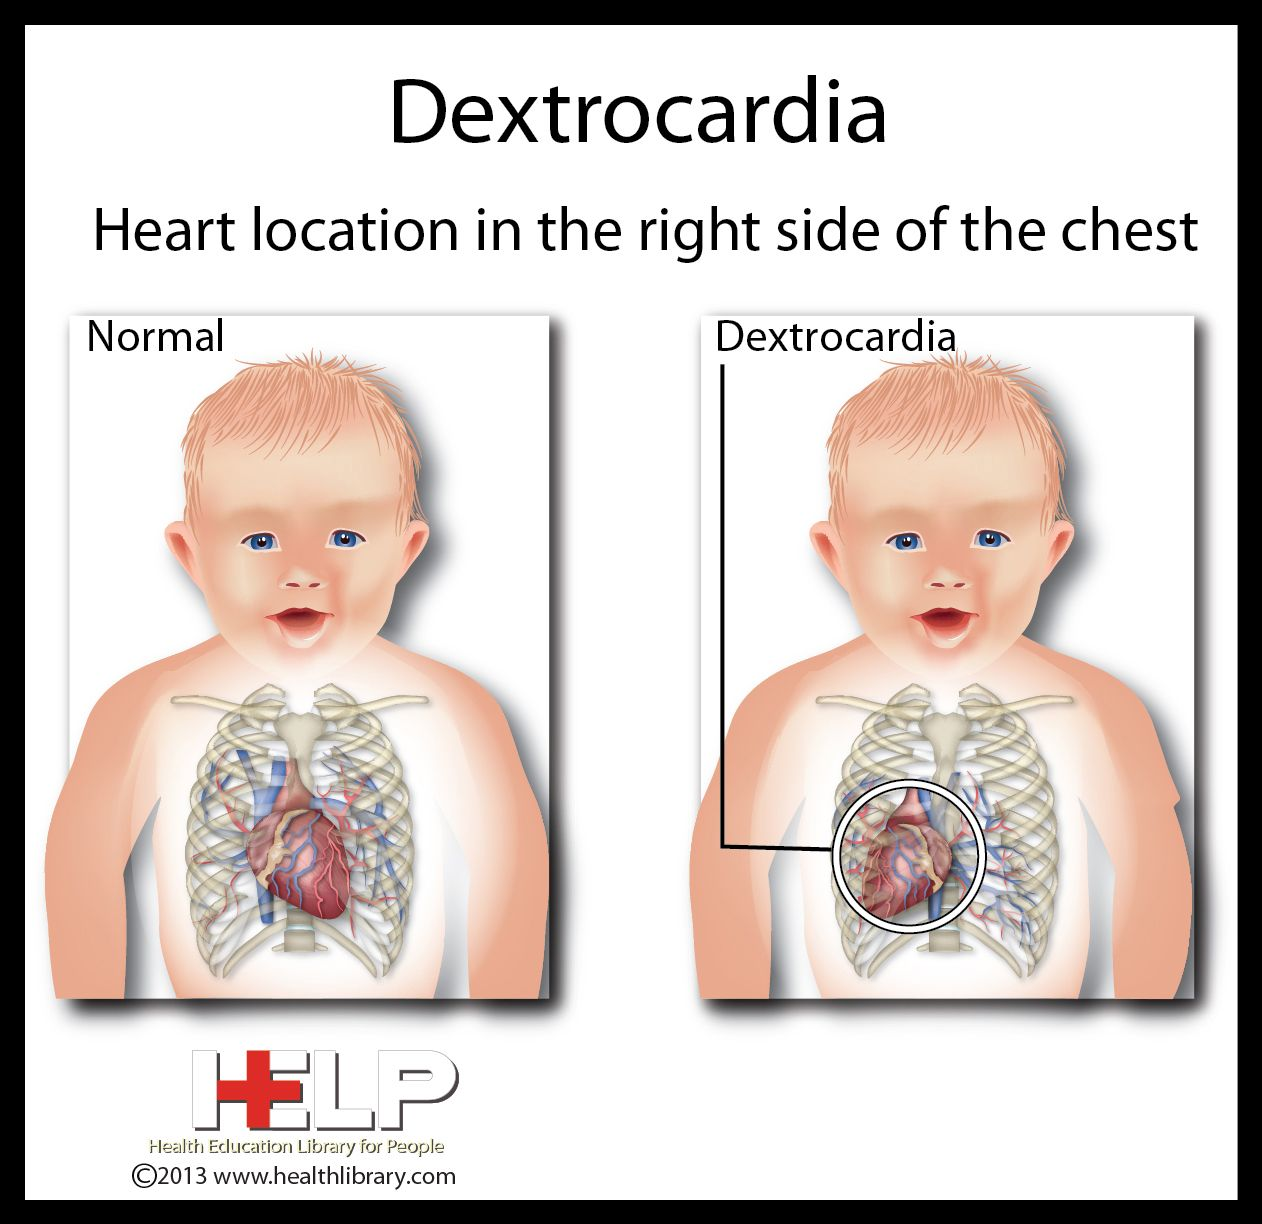 pediatric ekg lead placement diagram honeywell thermostat wiring rth2510 image result for dextrocardia nursing stuff pinterest